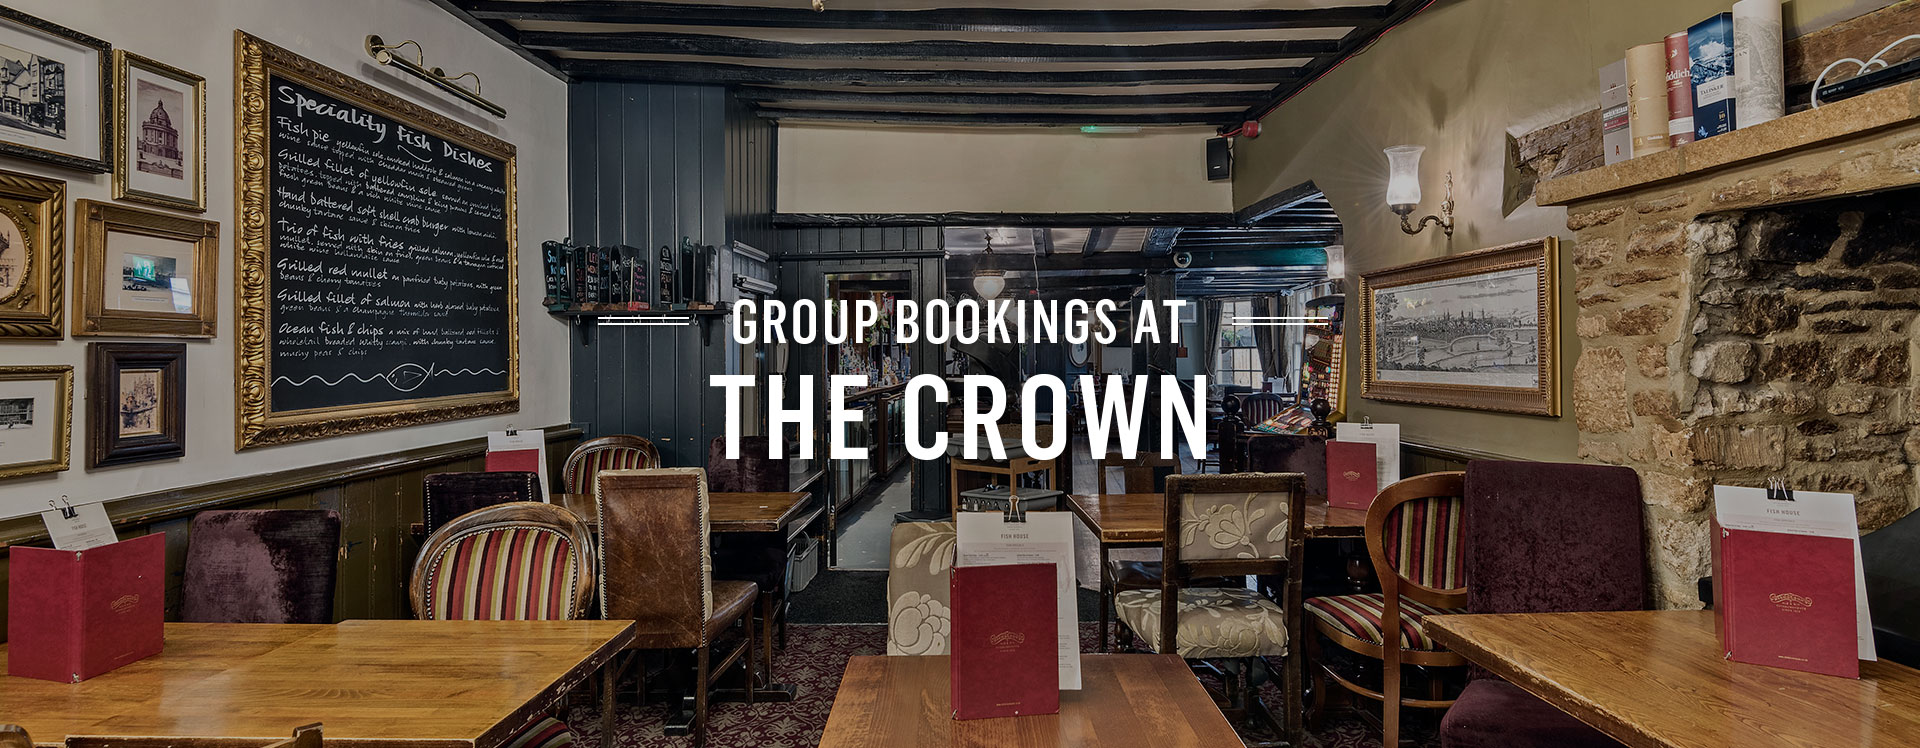 Group Bookings at The Crown